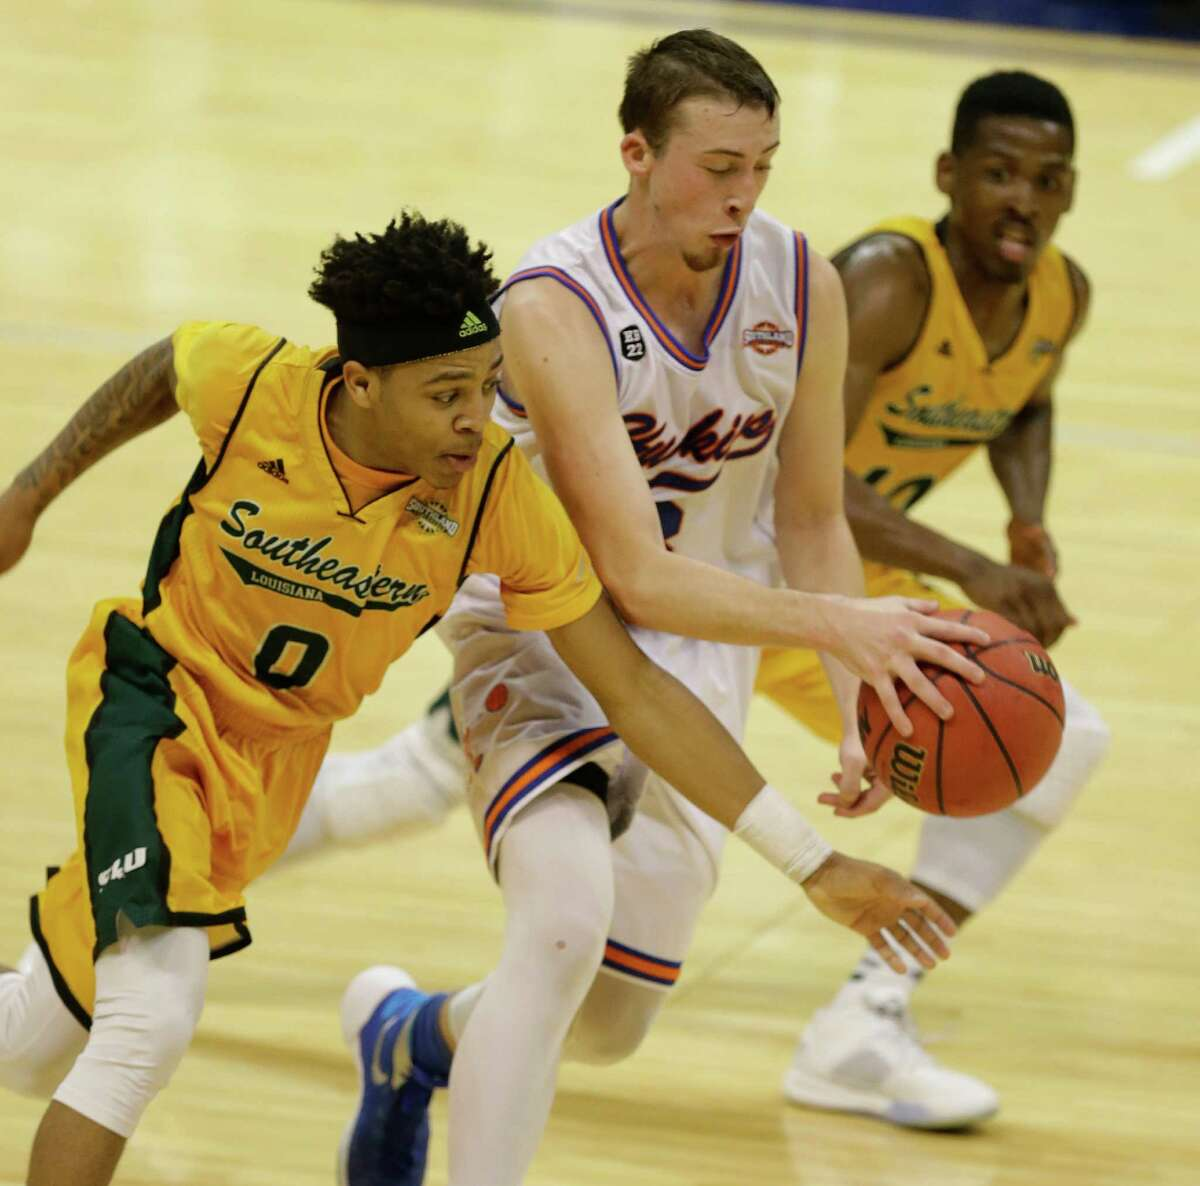 Houston Baptist Asa Cantwell works to control ball against Southeastern Louisiana (0) Marlain Veal and Zay Jackson during the second of game at the Southland conference tournament Thursday, March 10, 2016, in Katy.